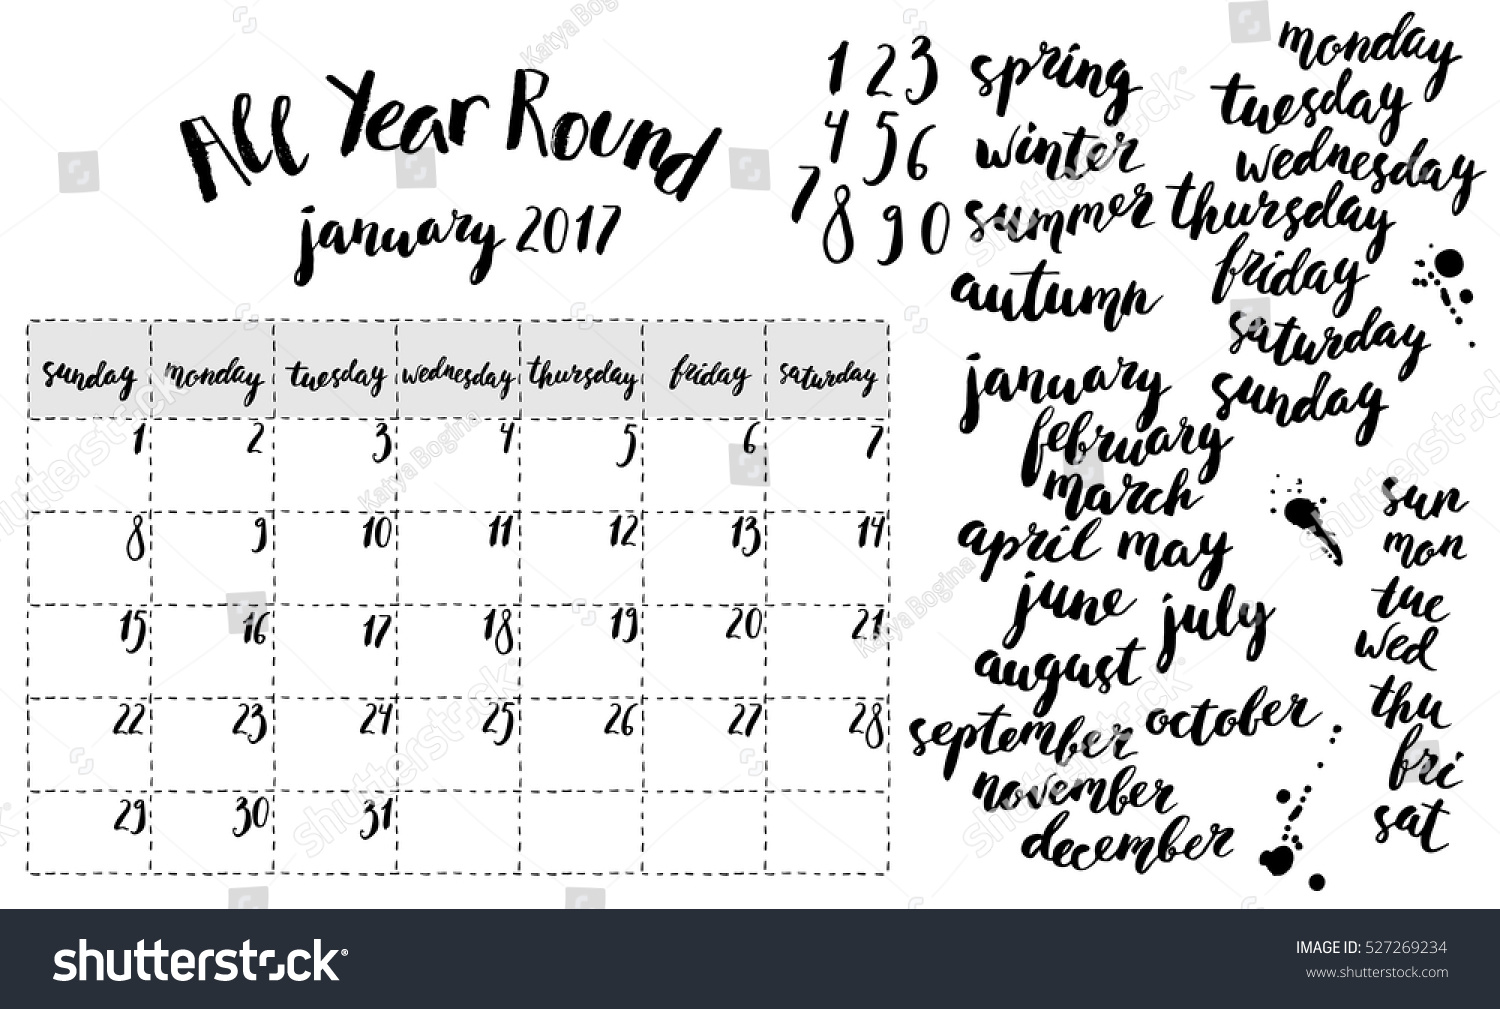 month planner template